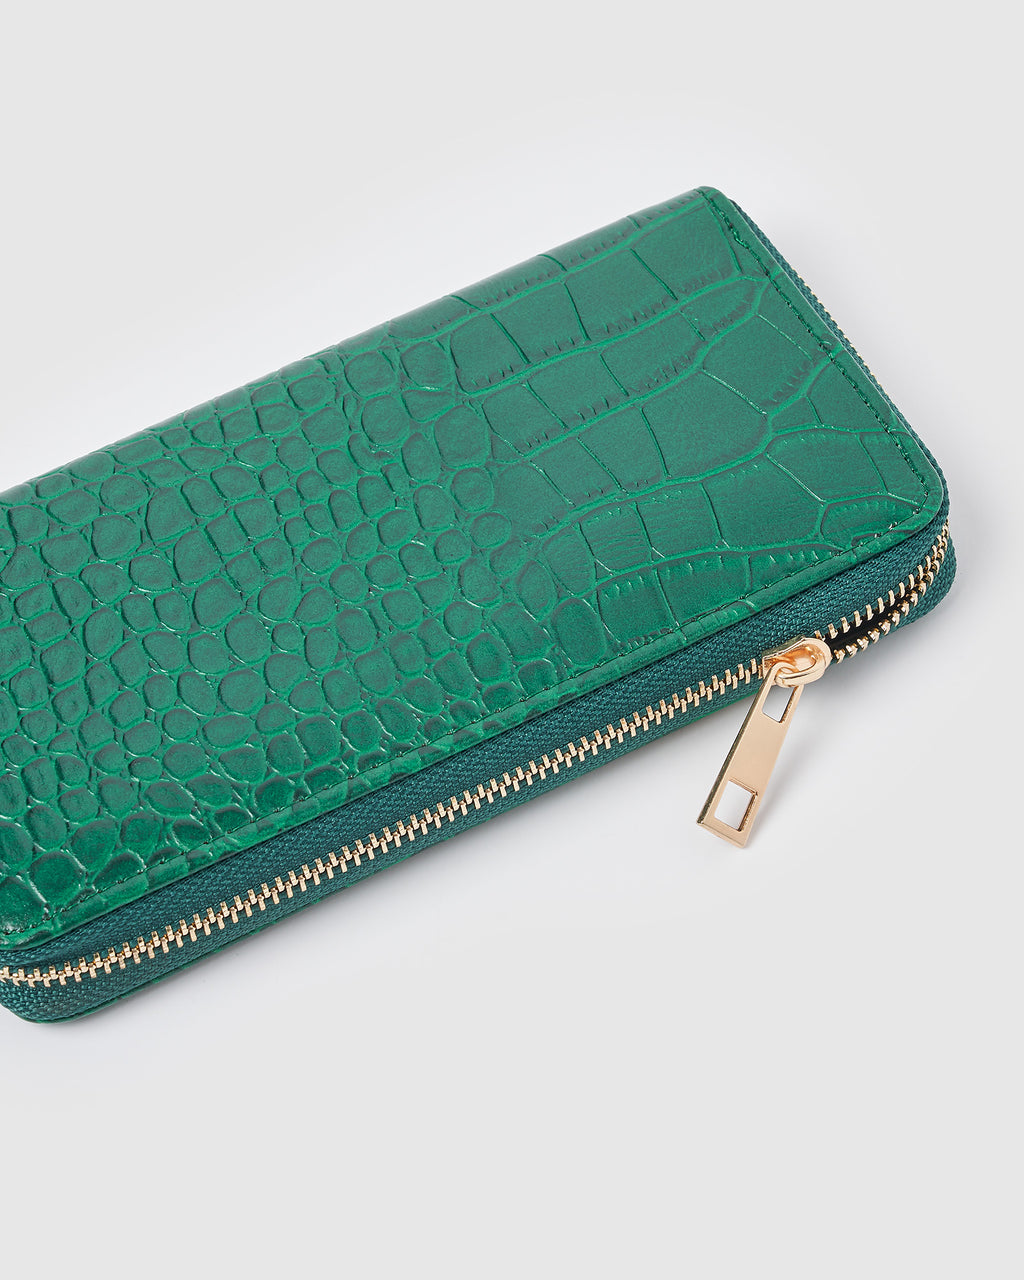 Izoa Kyra Wallet Emerald Green